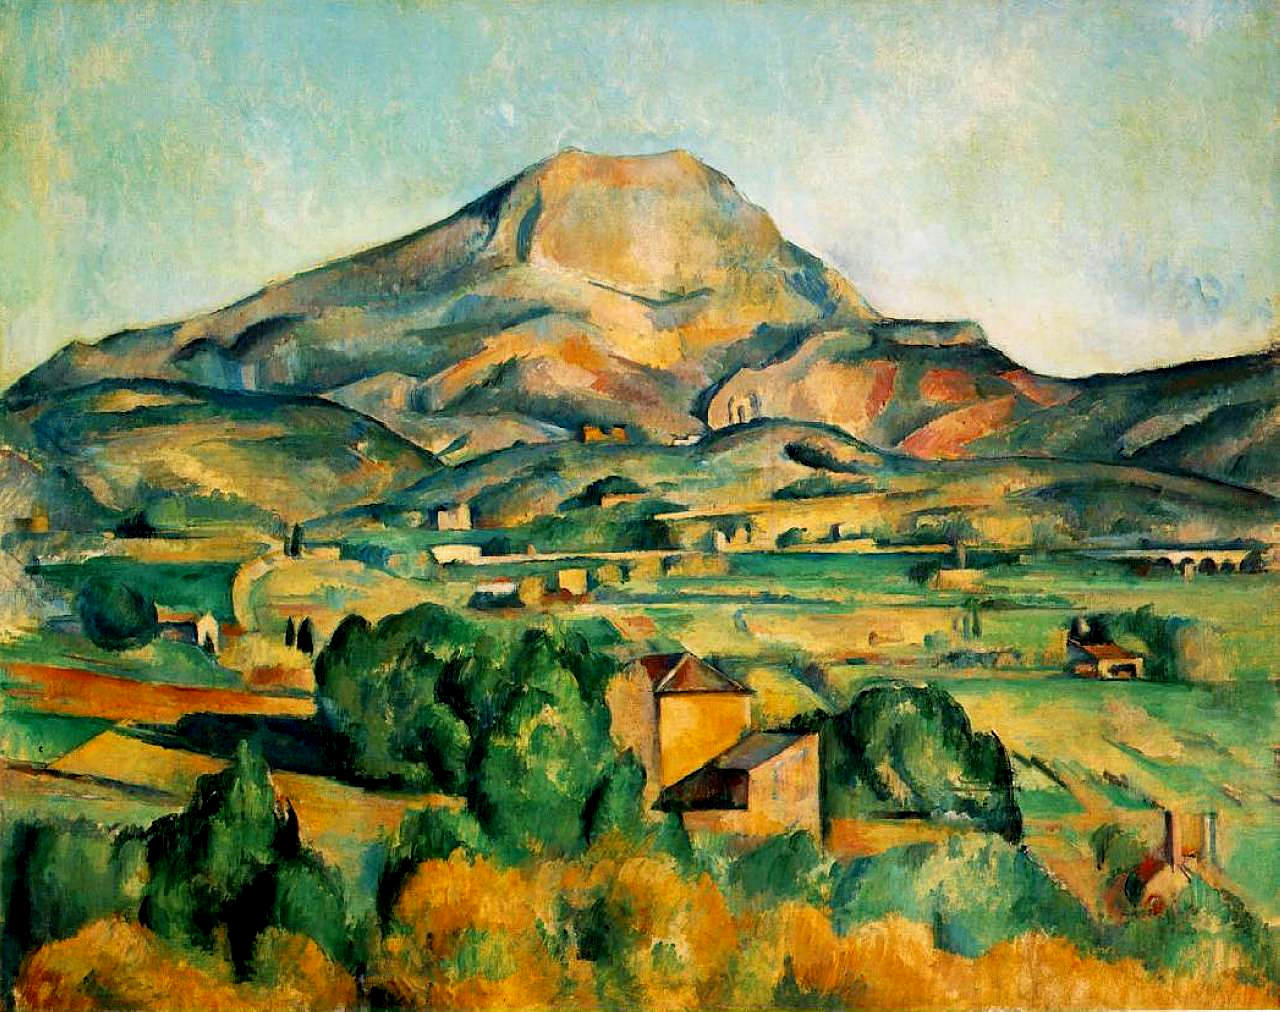 P. Cézanne, Mont Sainte-Victoire, 1895. The Barnes Foundation, Merion, Pennsylvania, USA